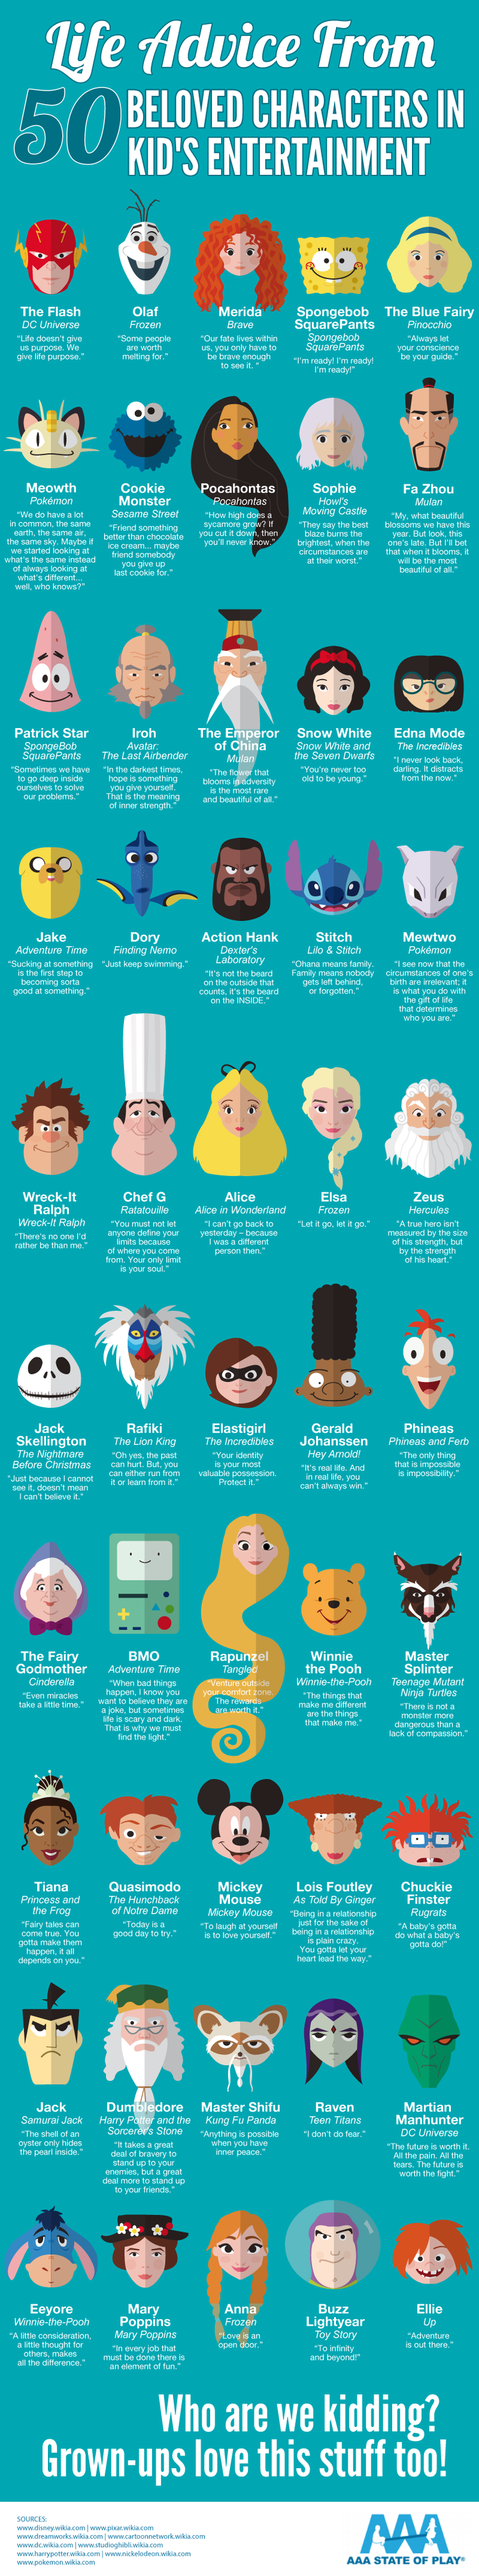 life-advice-from-50-beloved-characters-in-kids-entertainment-infographic12